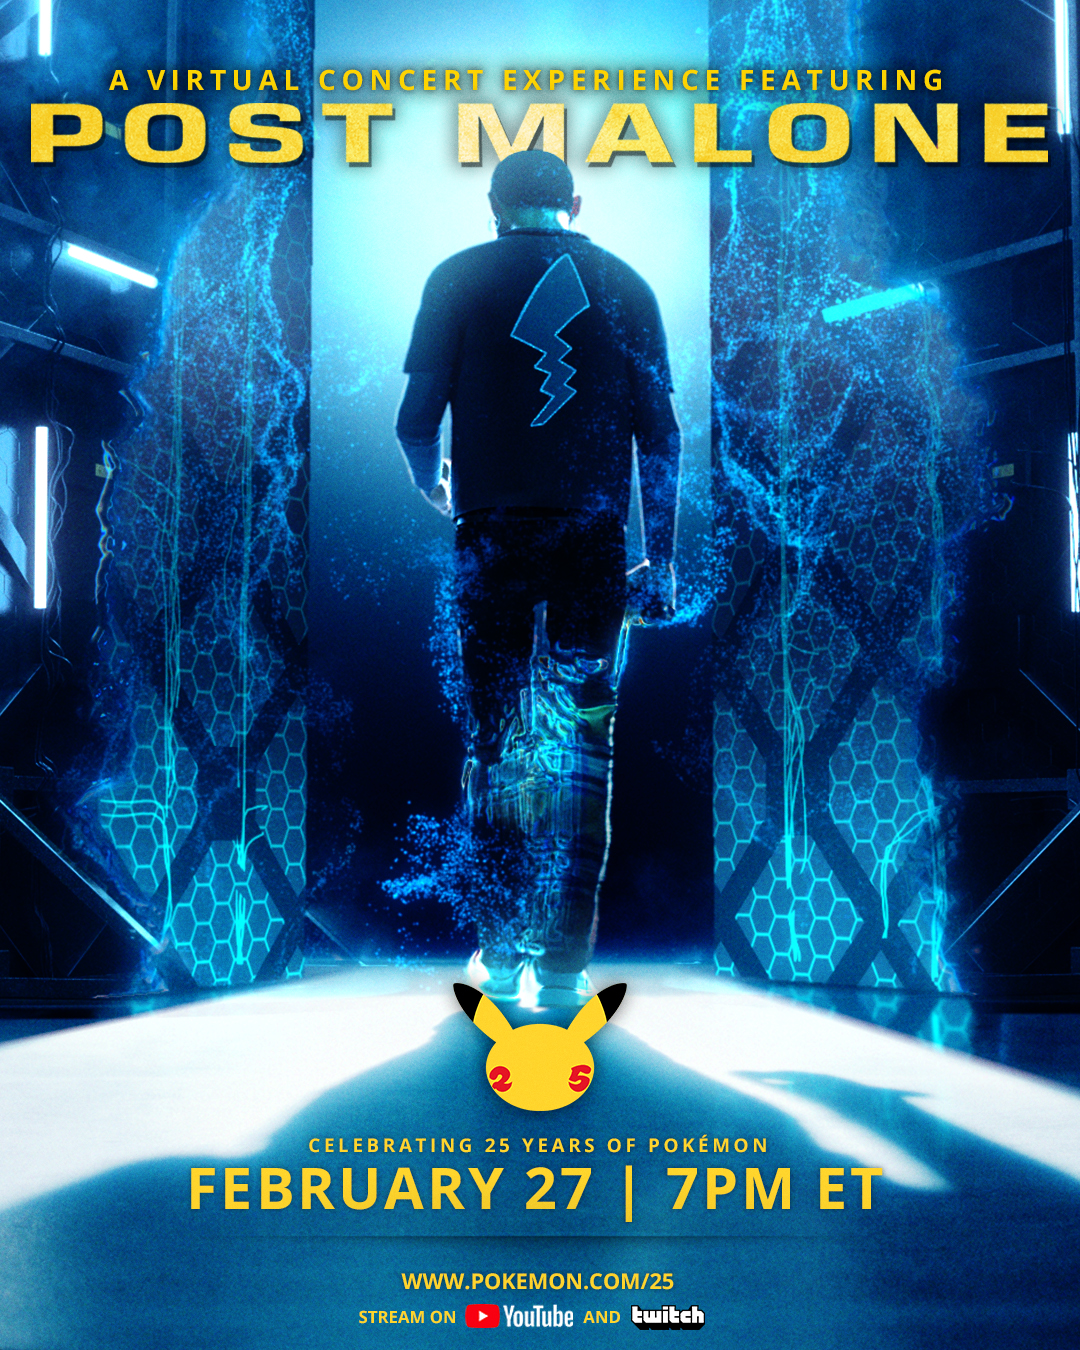 Post_Malone_x_Pokemon_Virtual_Concert_Poster.jpg